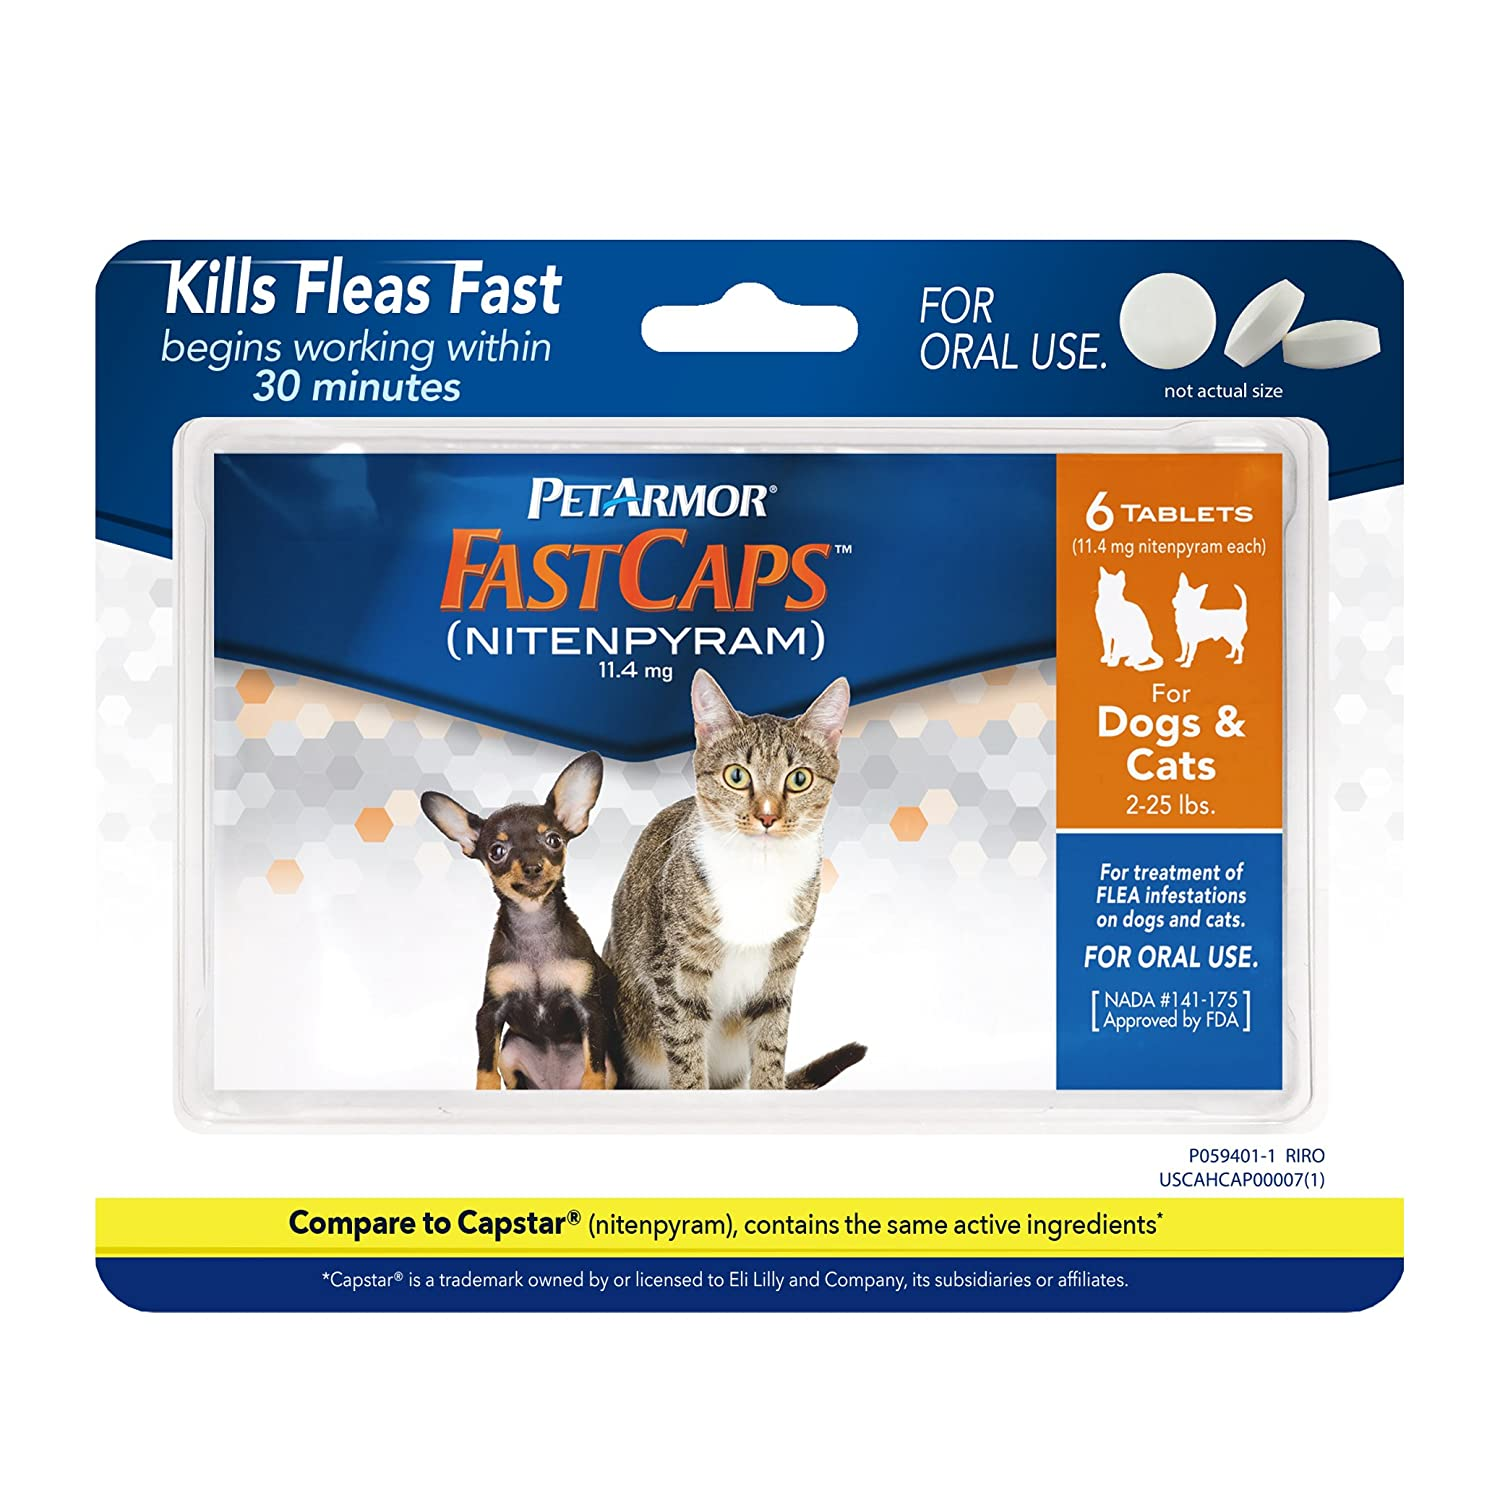 Amazon PetArmor FastCaps nitenpyram Oral Flea Control